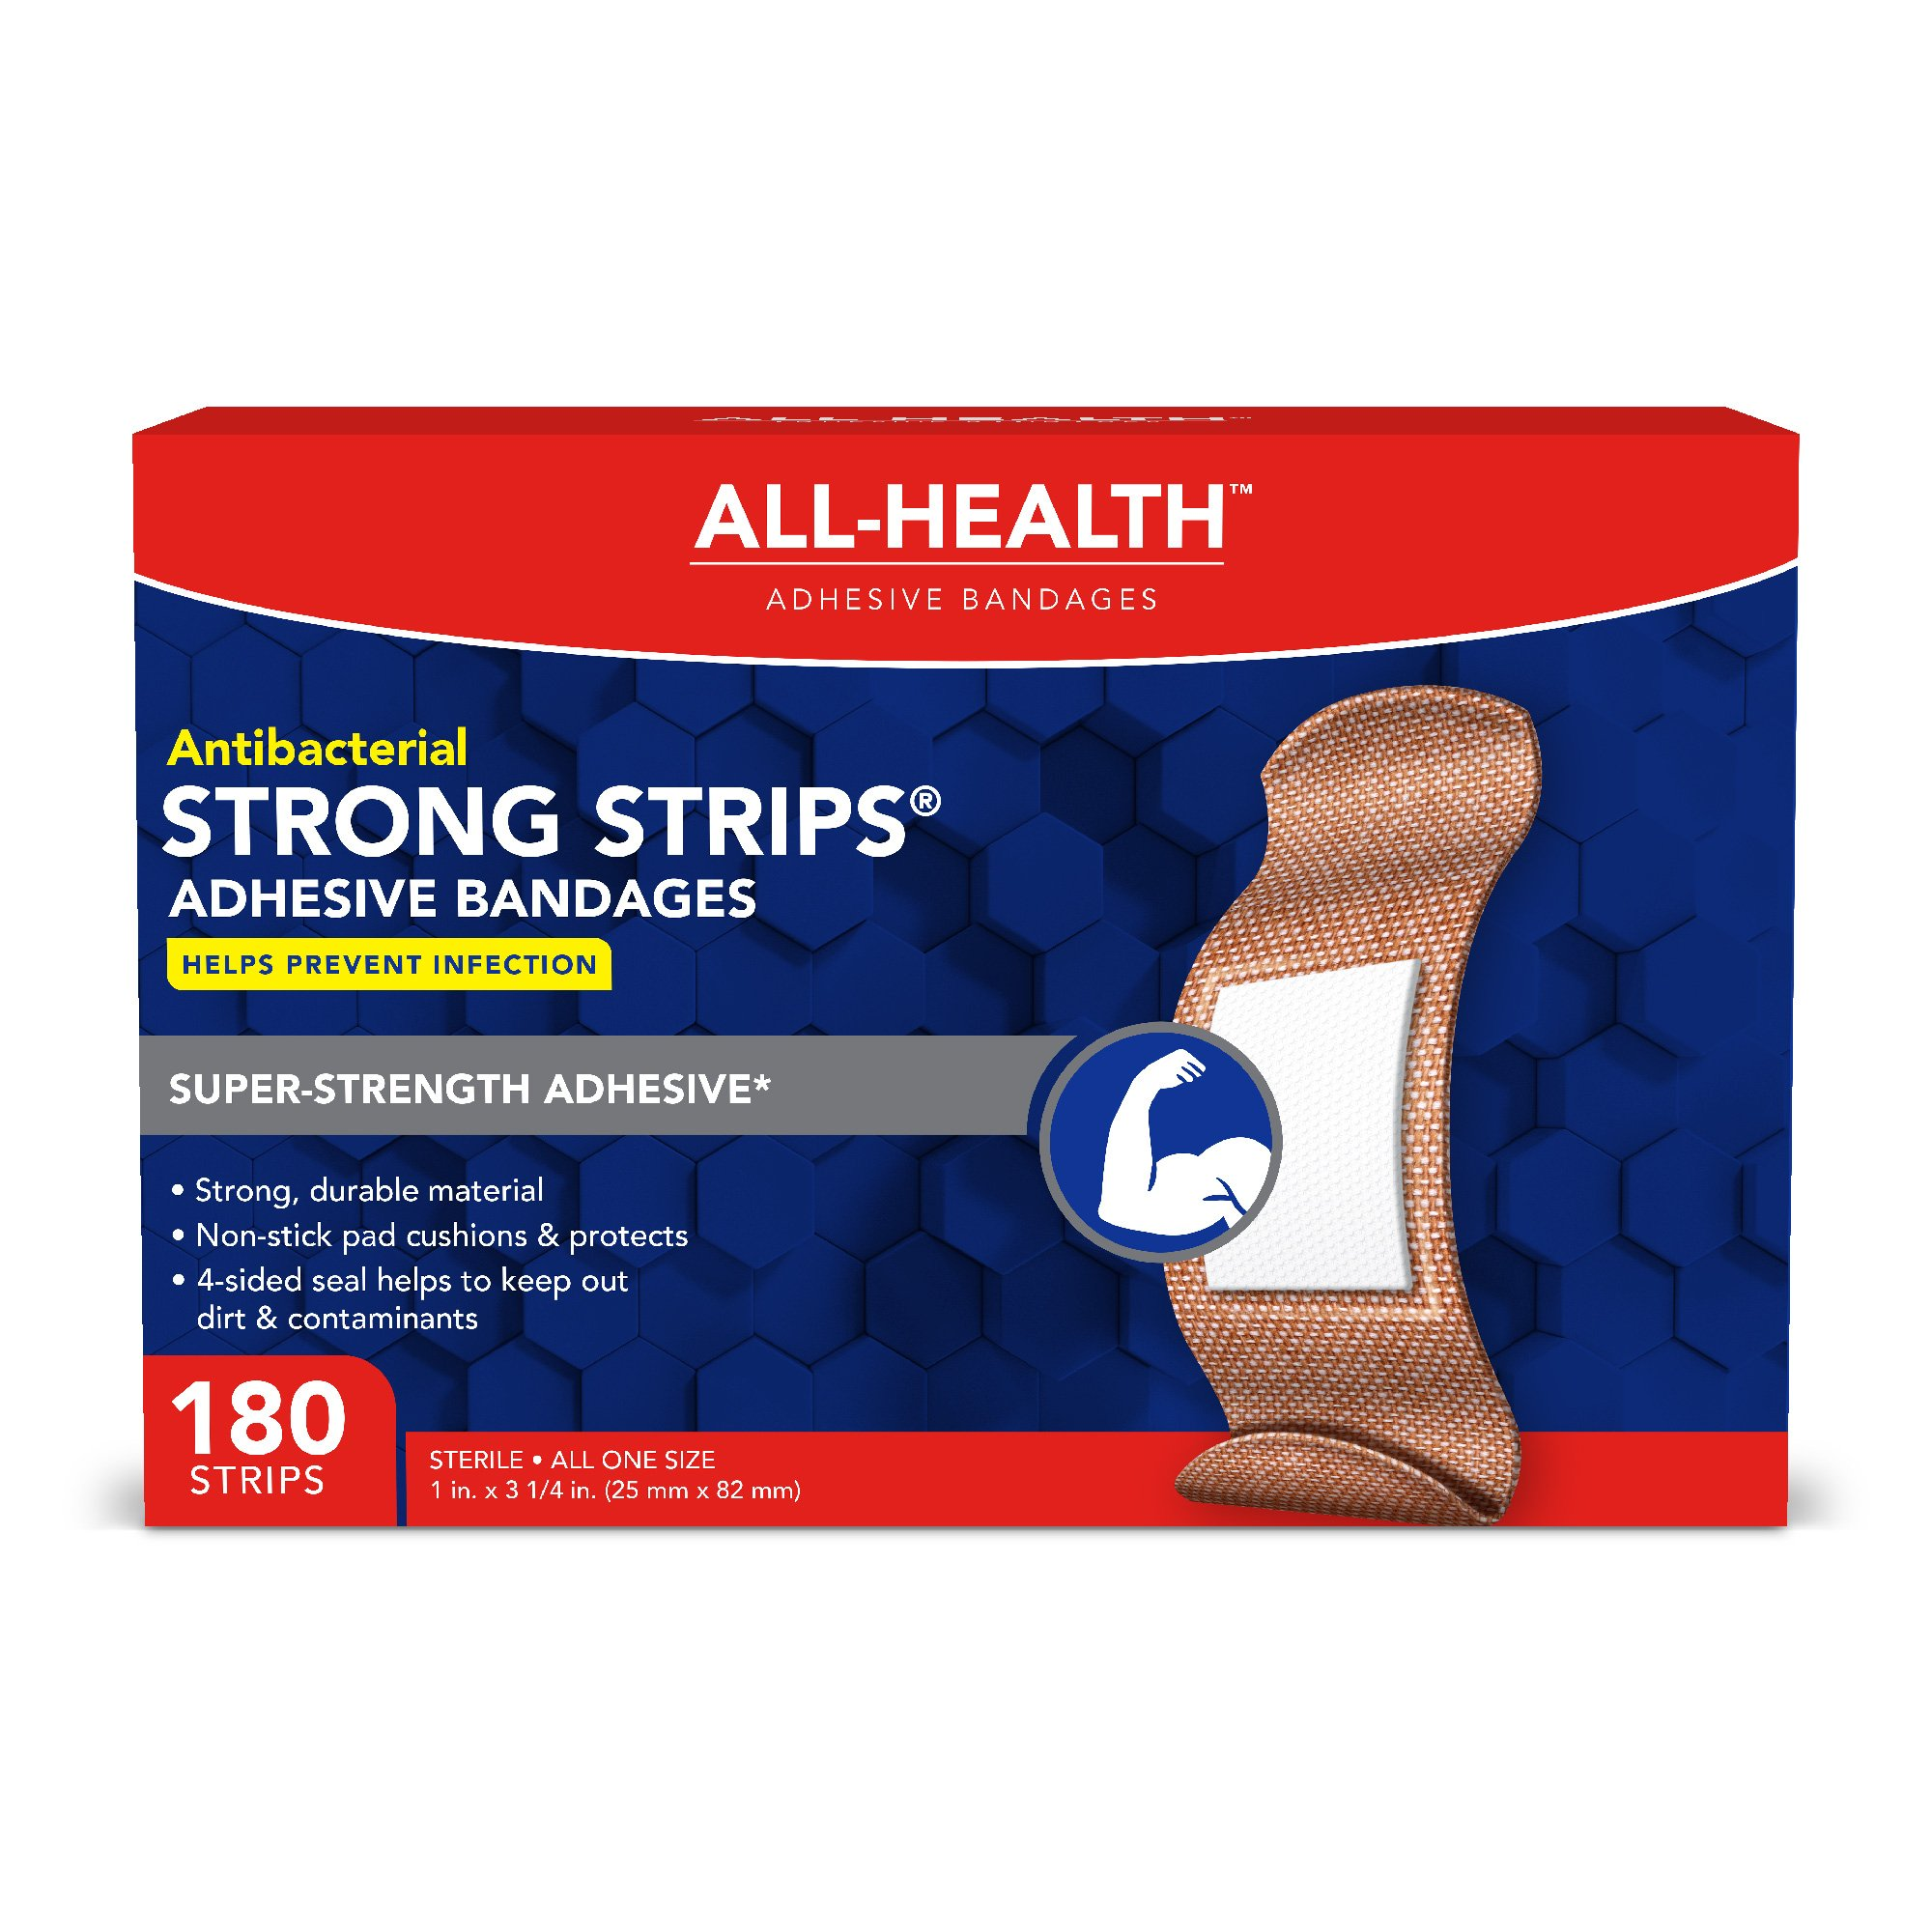 All Health Strong Strips Antibacterial Heavy-Duty Adhesive Bandages, 1 Inch (180 Count) by All Health